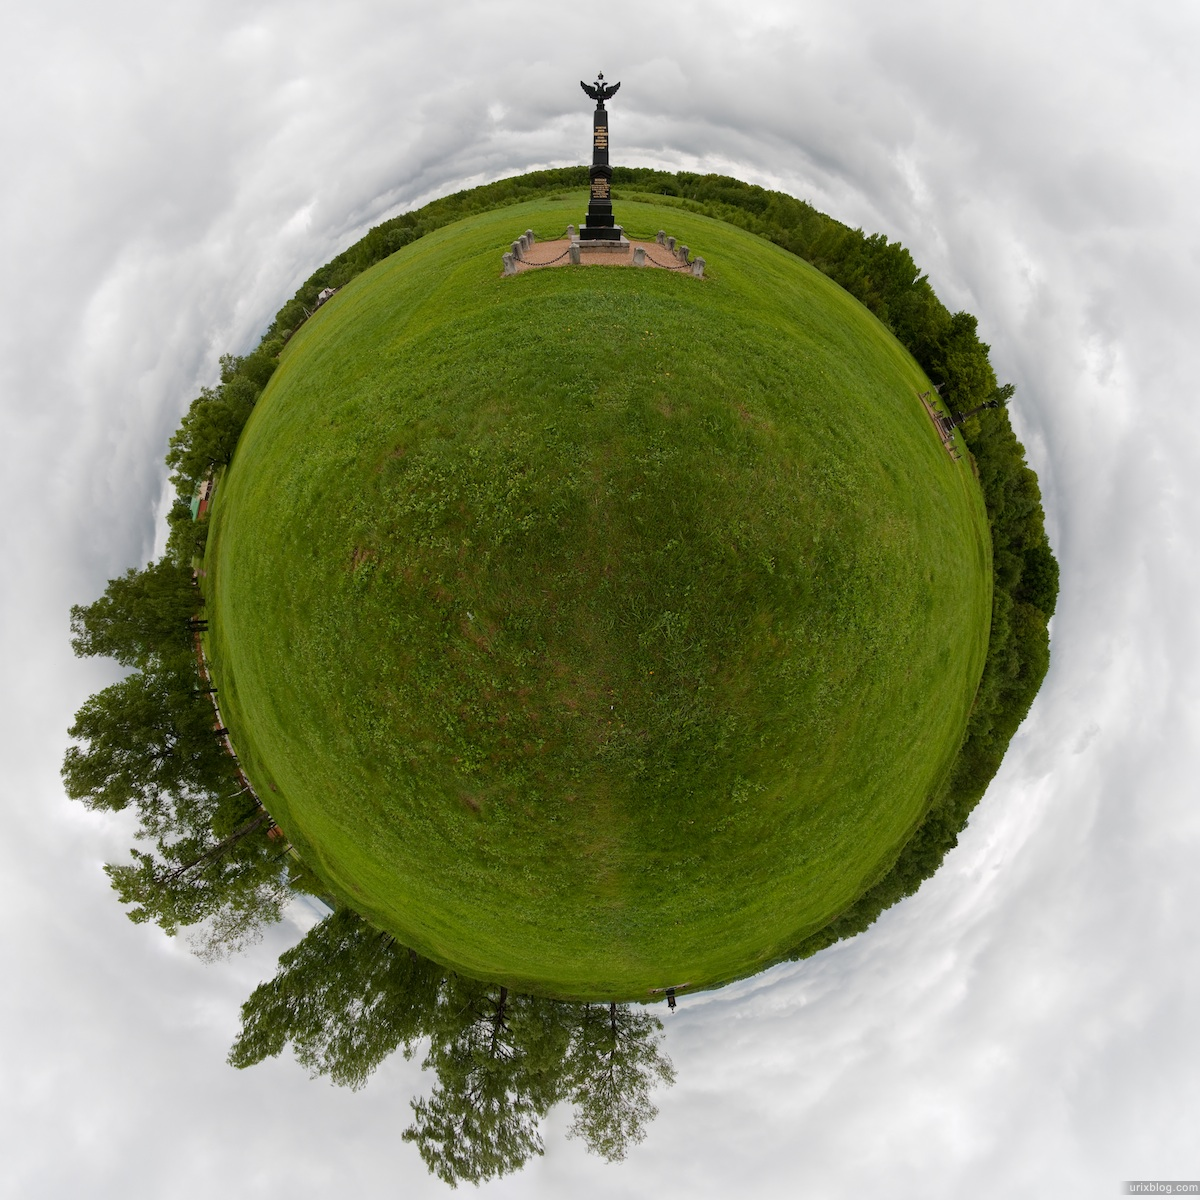 2009 Бородинское поле Россия little small planet panorama панорама маленькая планета